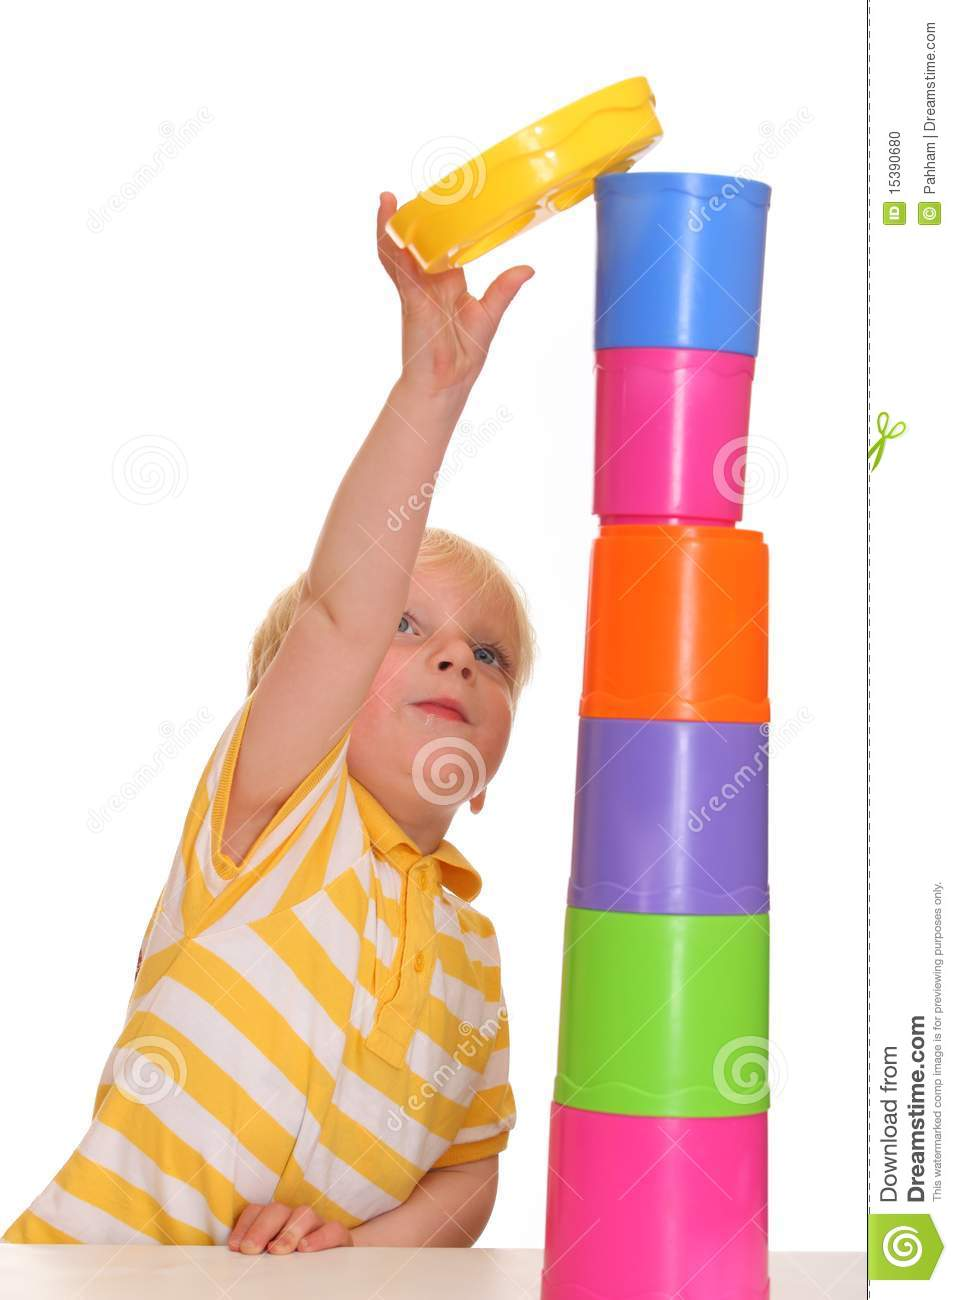 Child Builds Stacking Tower Stock Photo - Image: 15390680